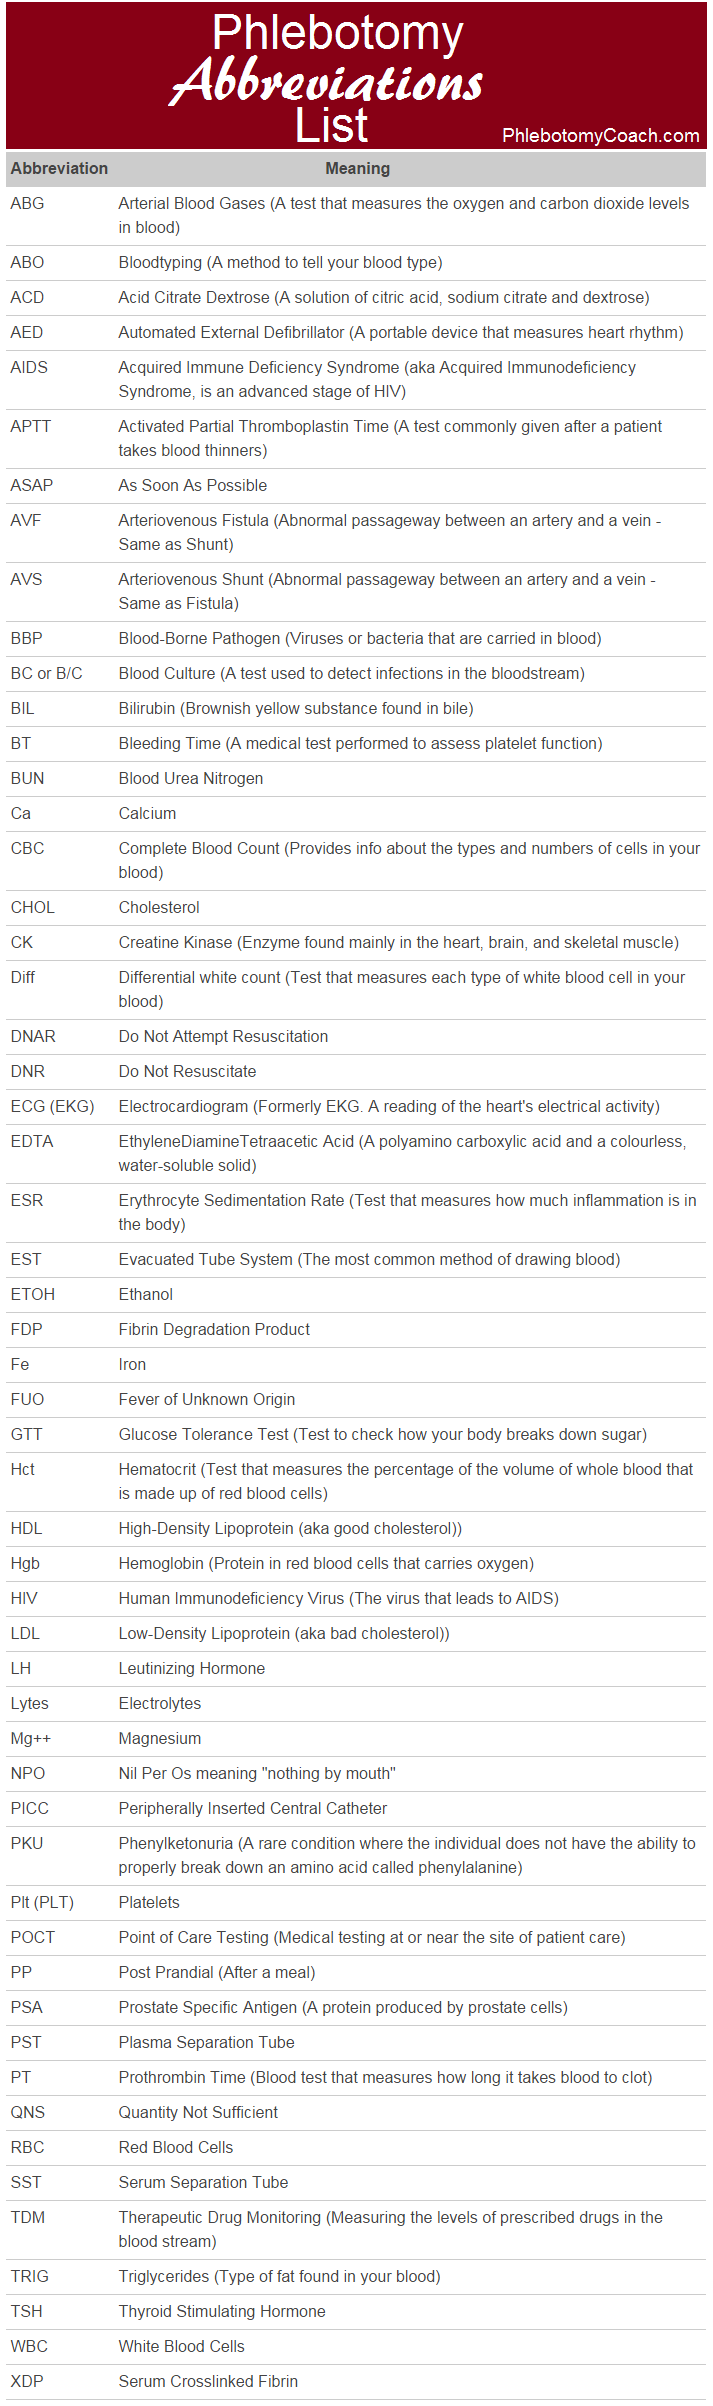 Phlebotomy Abbreviations List - Plus click through for their